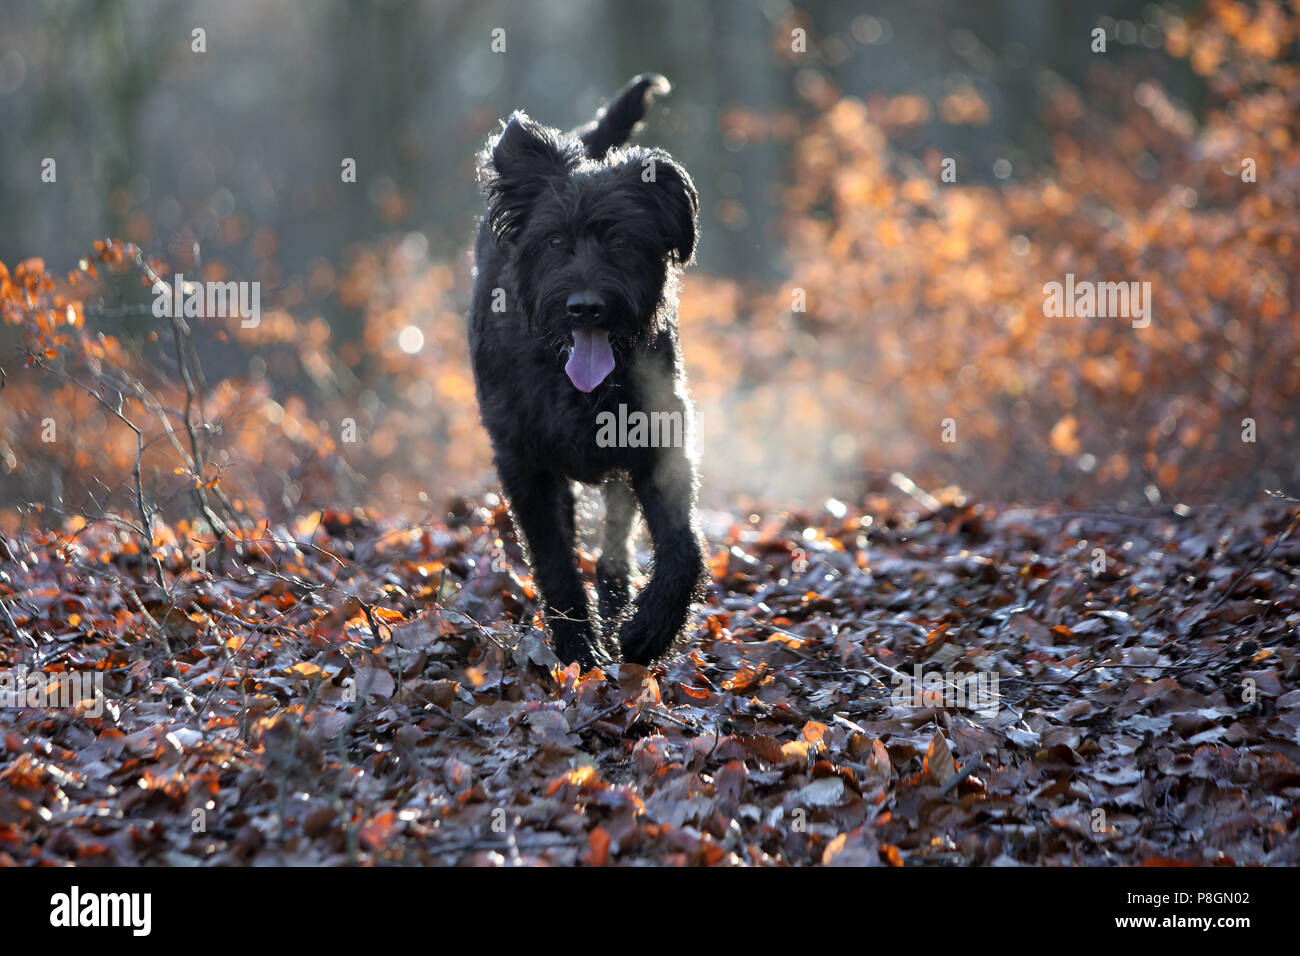 New Kaetwin, Germany, Giant Schnauzer runs panting in the forest on autumn leaves - Stock Image